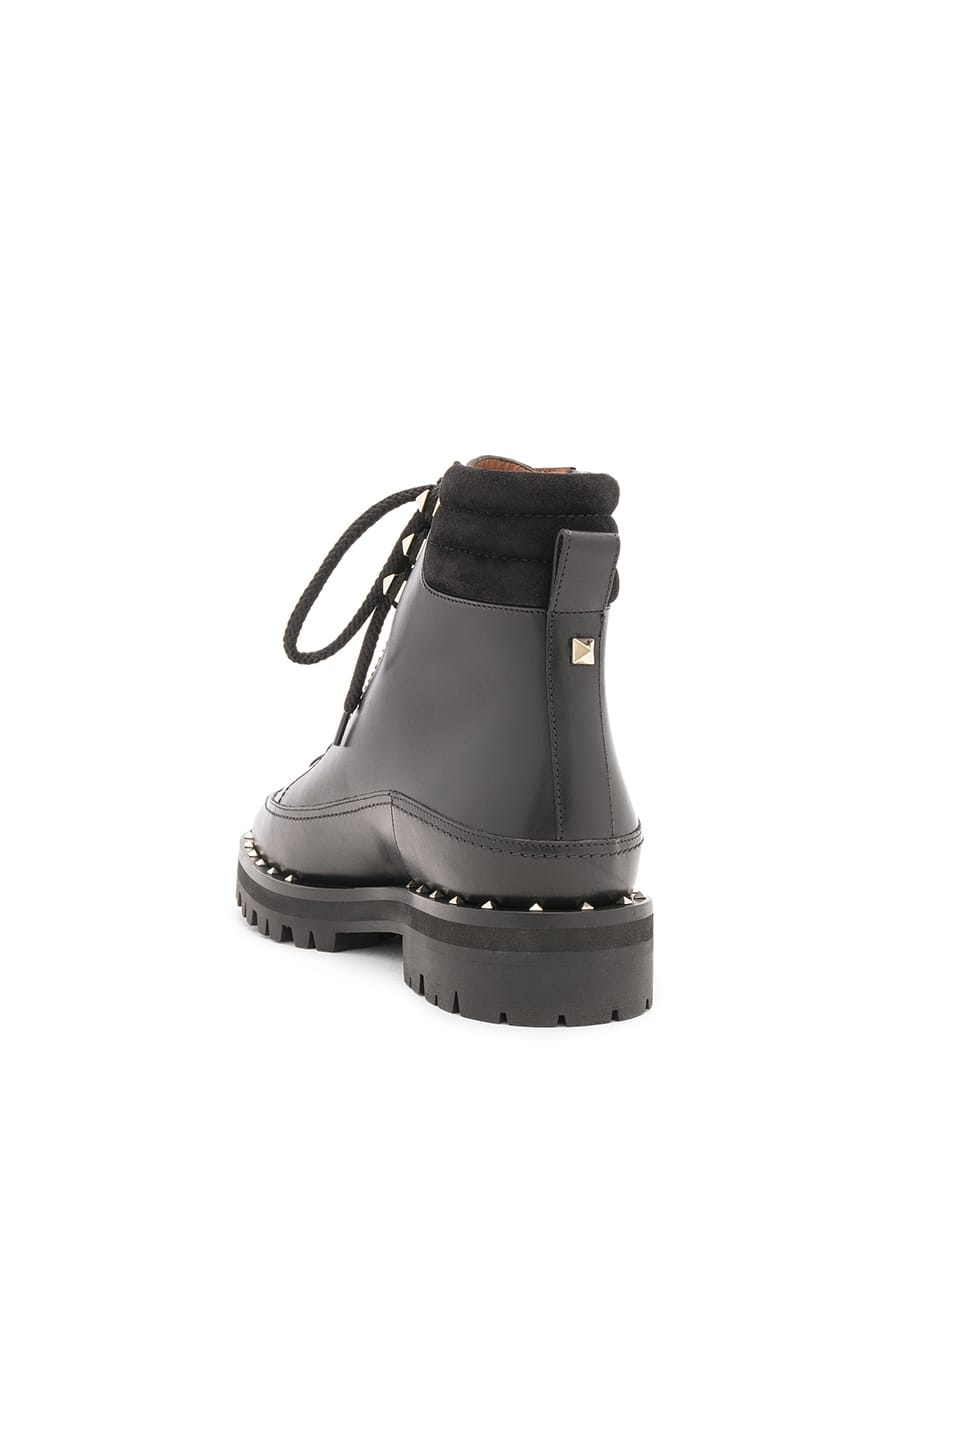 84ee2f1bff30a Buy Original Valentino Leather Soul Rockstud Hiking Boots at ...